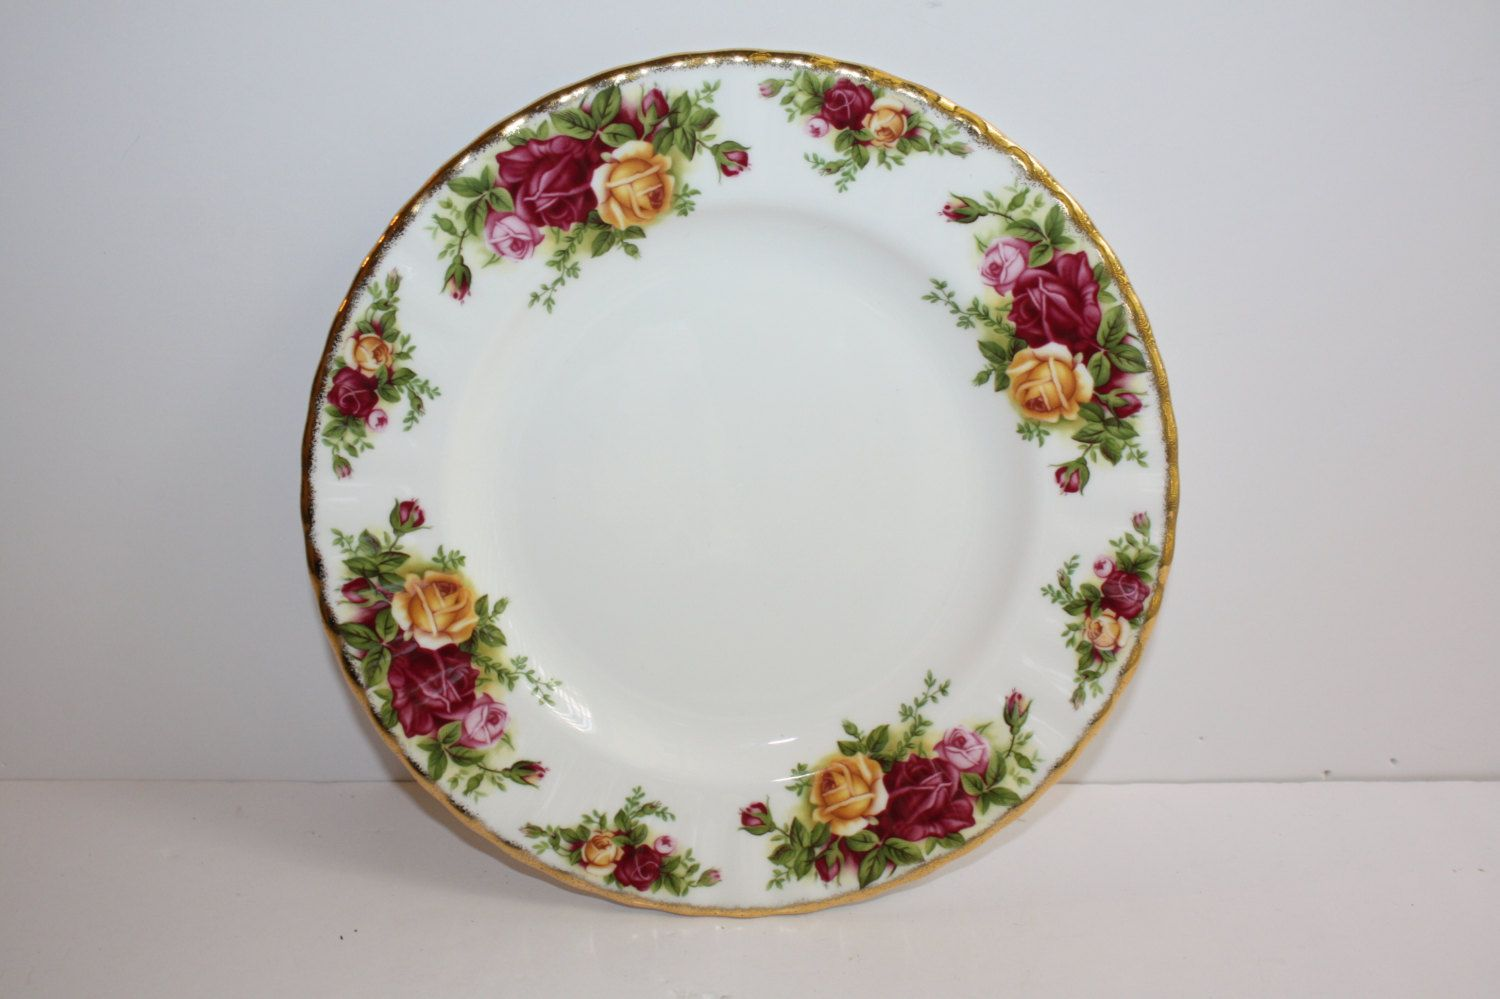 Vintage Royal Albert Old Country Roses Salad Plate 8 Dessert Plate Bone China Made In England Floral Dessert Plate Replacement Plate Floral Dessert Dessert Plate Country Roses